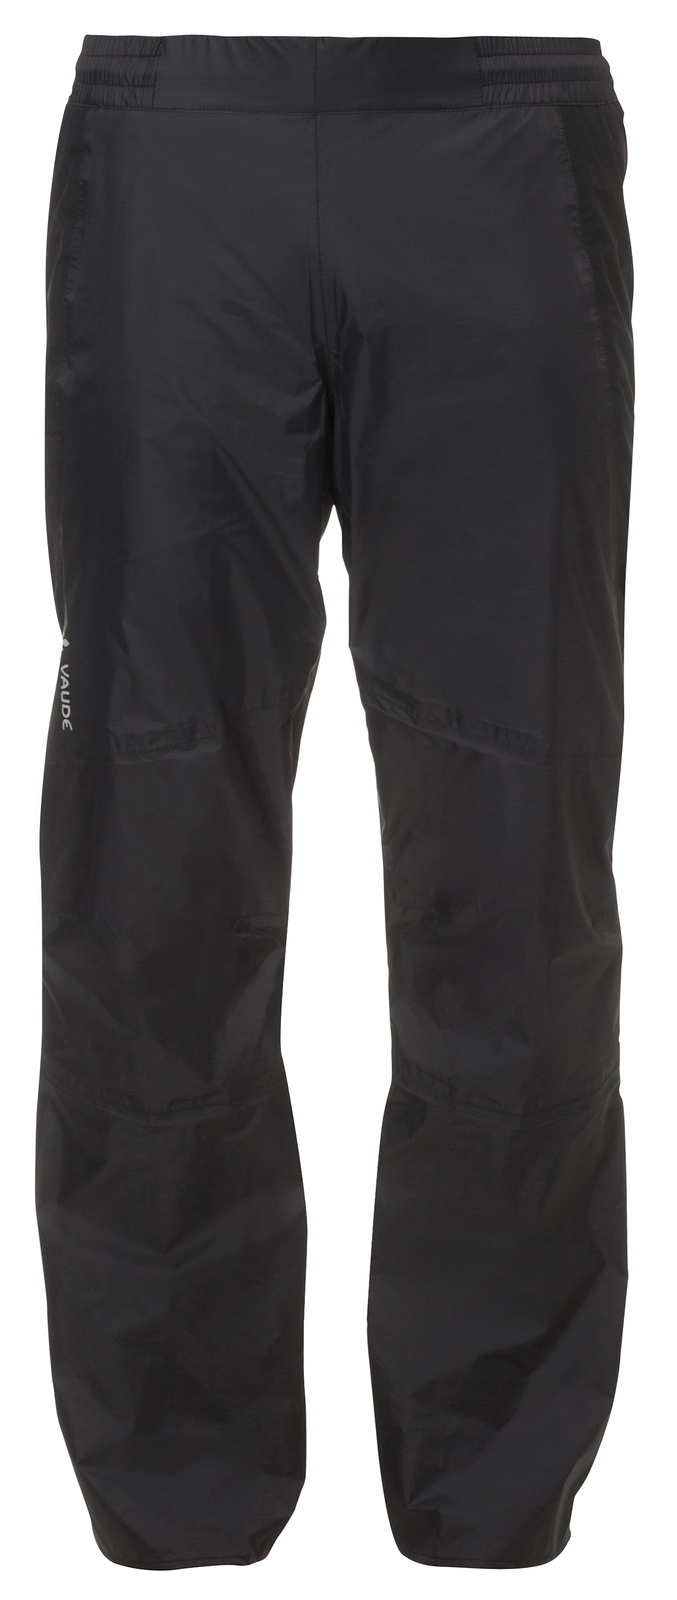 VAUDE Men´s Spray Pants III black Größe XXXL-Short - schneider-sports